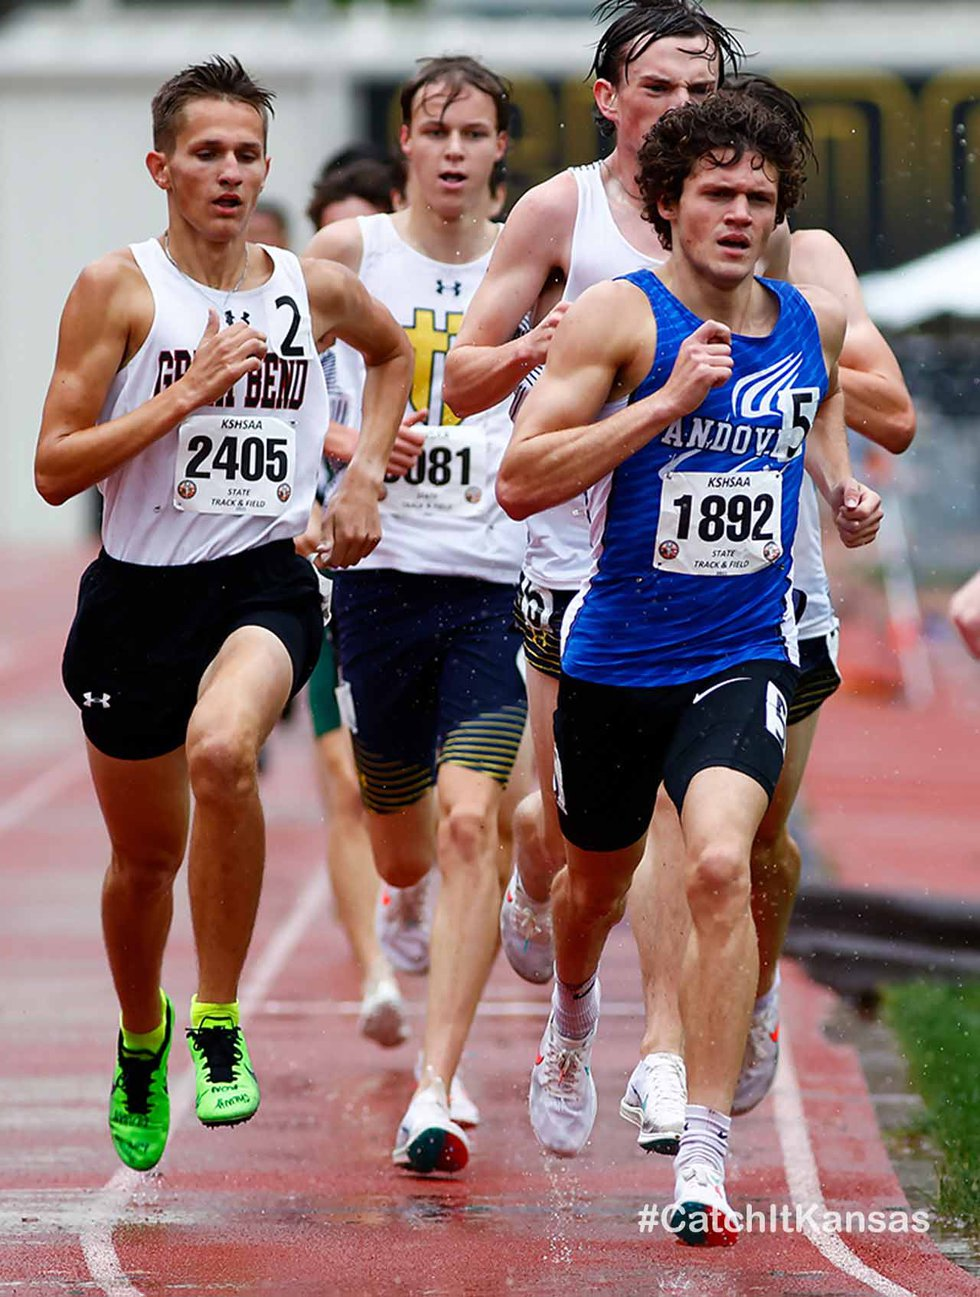 AndoverÕs Sam McDavitt, right, leads a pack of runners at the state track and field meet in...